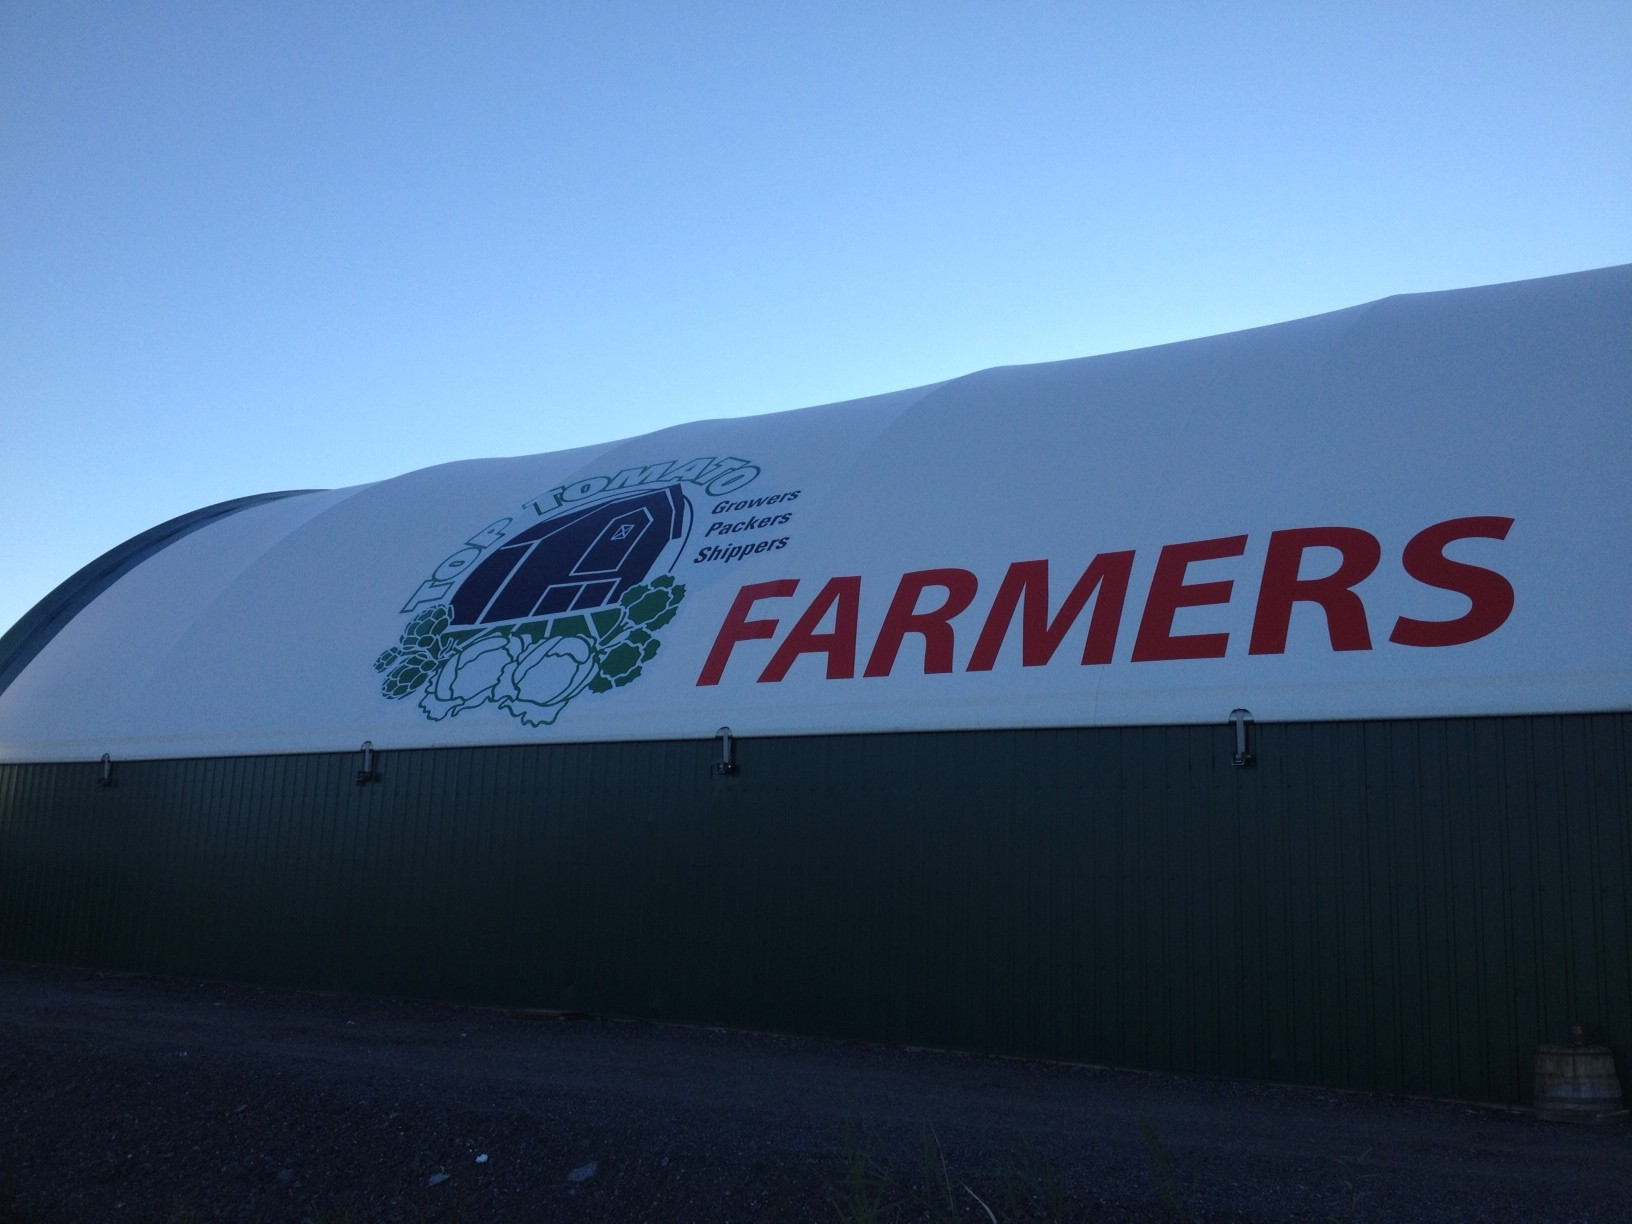 Top Tomato Foods Dome Tent Graphics